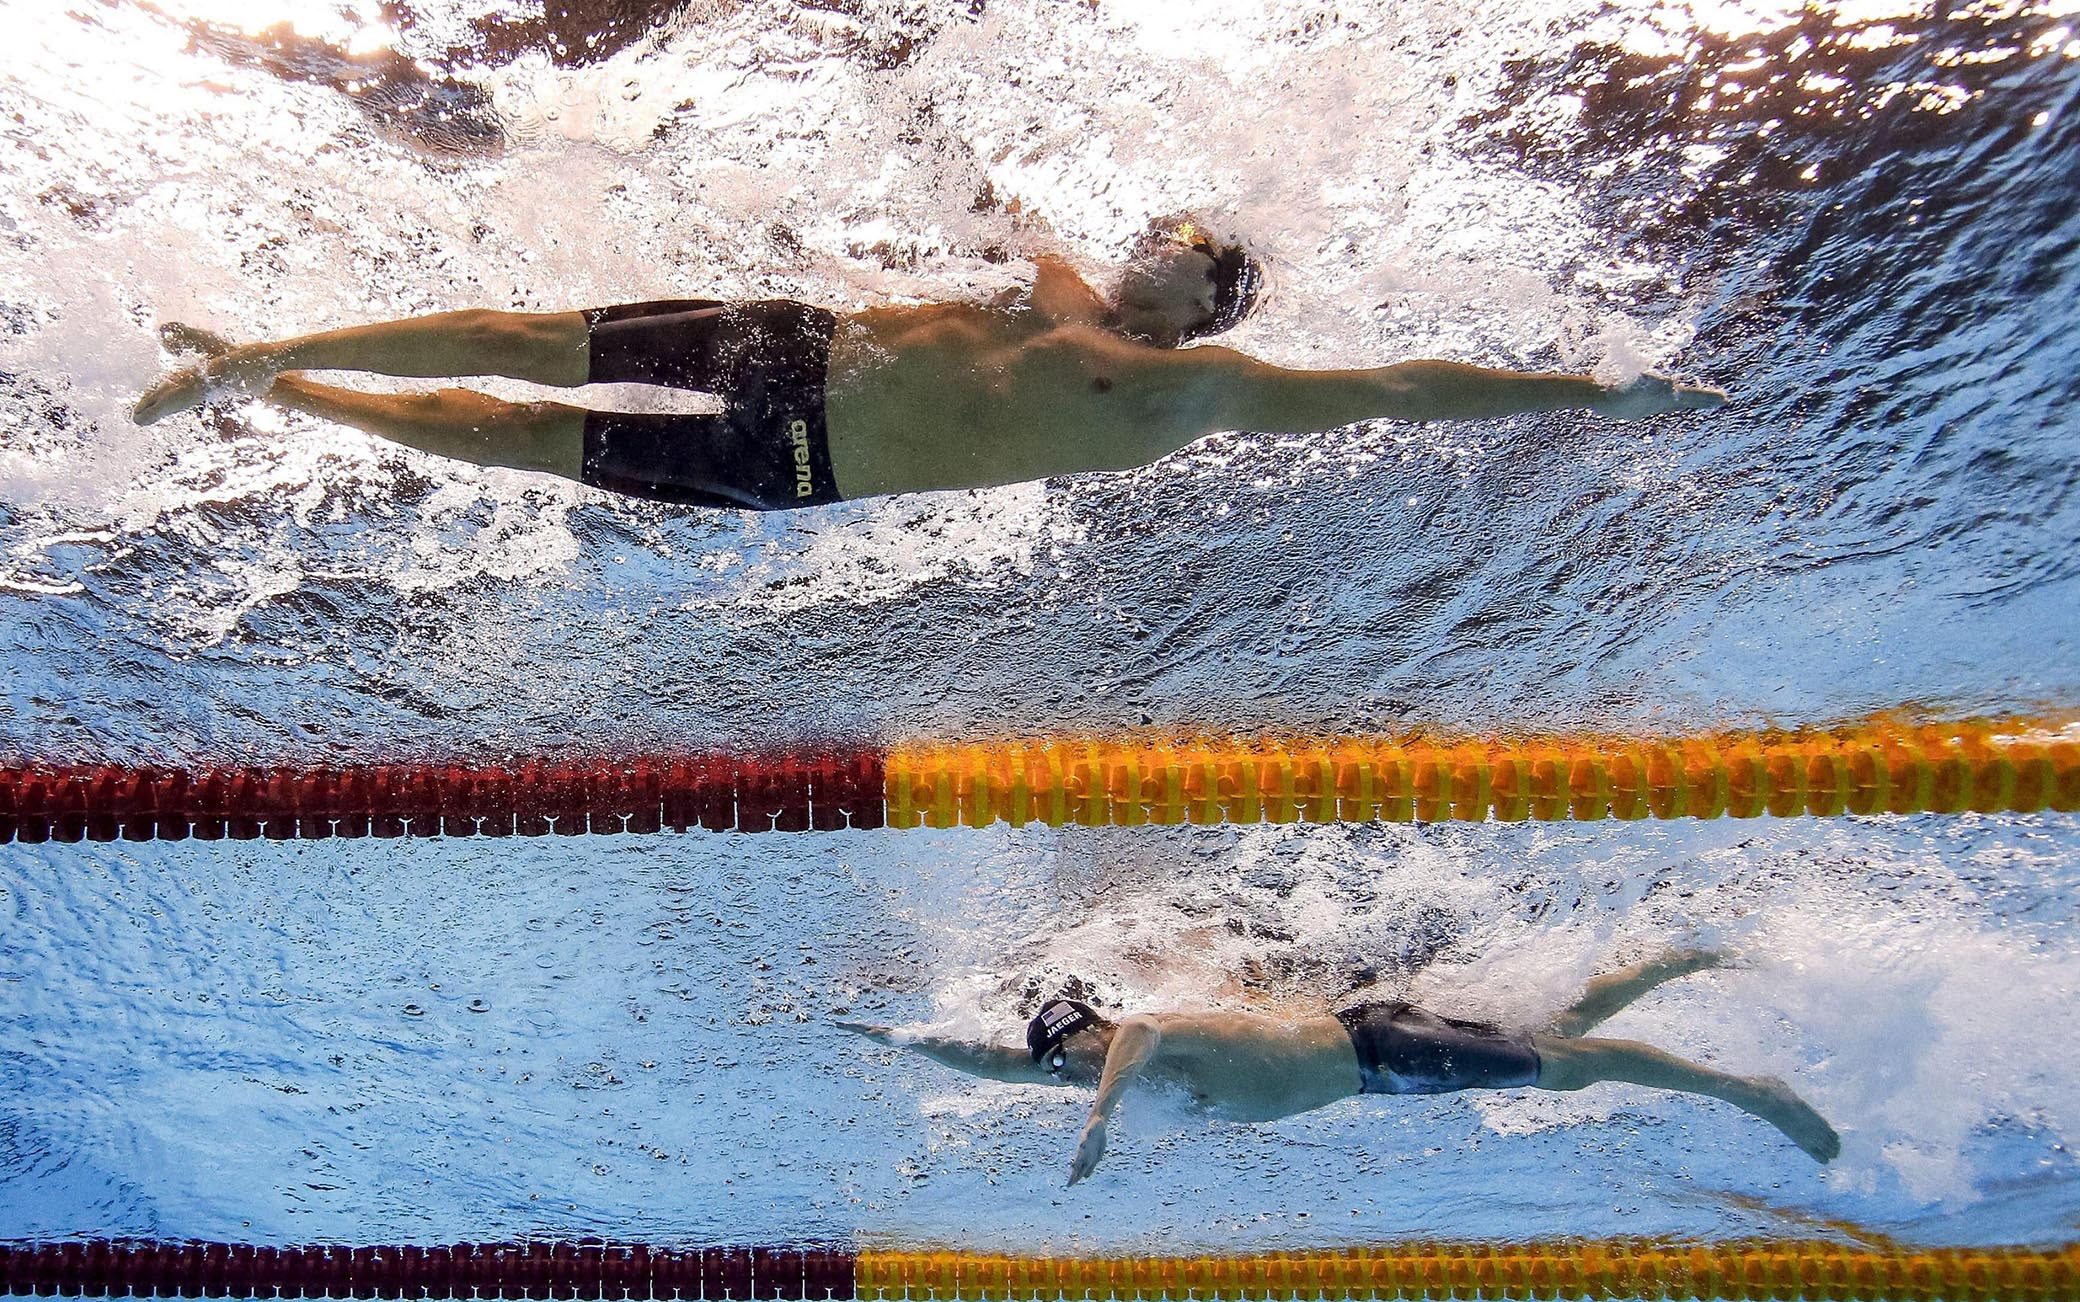 epa05482884 Gregorio Patrinieri of Italy (top) and Connor Jaeger of USA compete in the men's 1500m Freestyle Final race of the Rio 2016 Olympic Games Swimming events at Olympic Aquatics Stadium at the Olympic Park in Rio de Janeiro, Brazil, 14 August 2016.  EPA/PATRICK B. KRAEMER